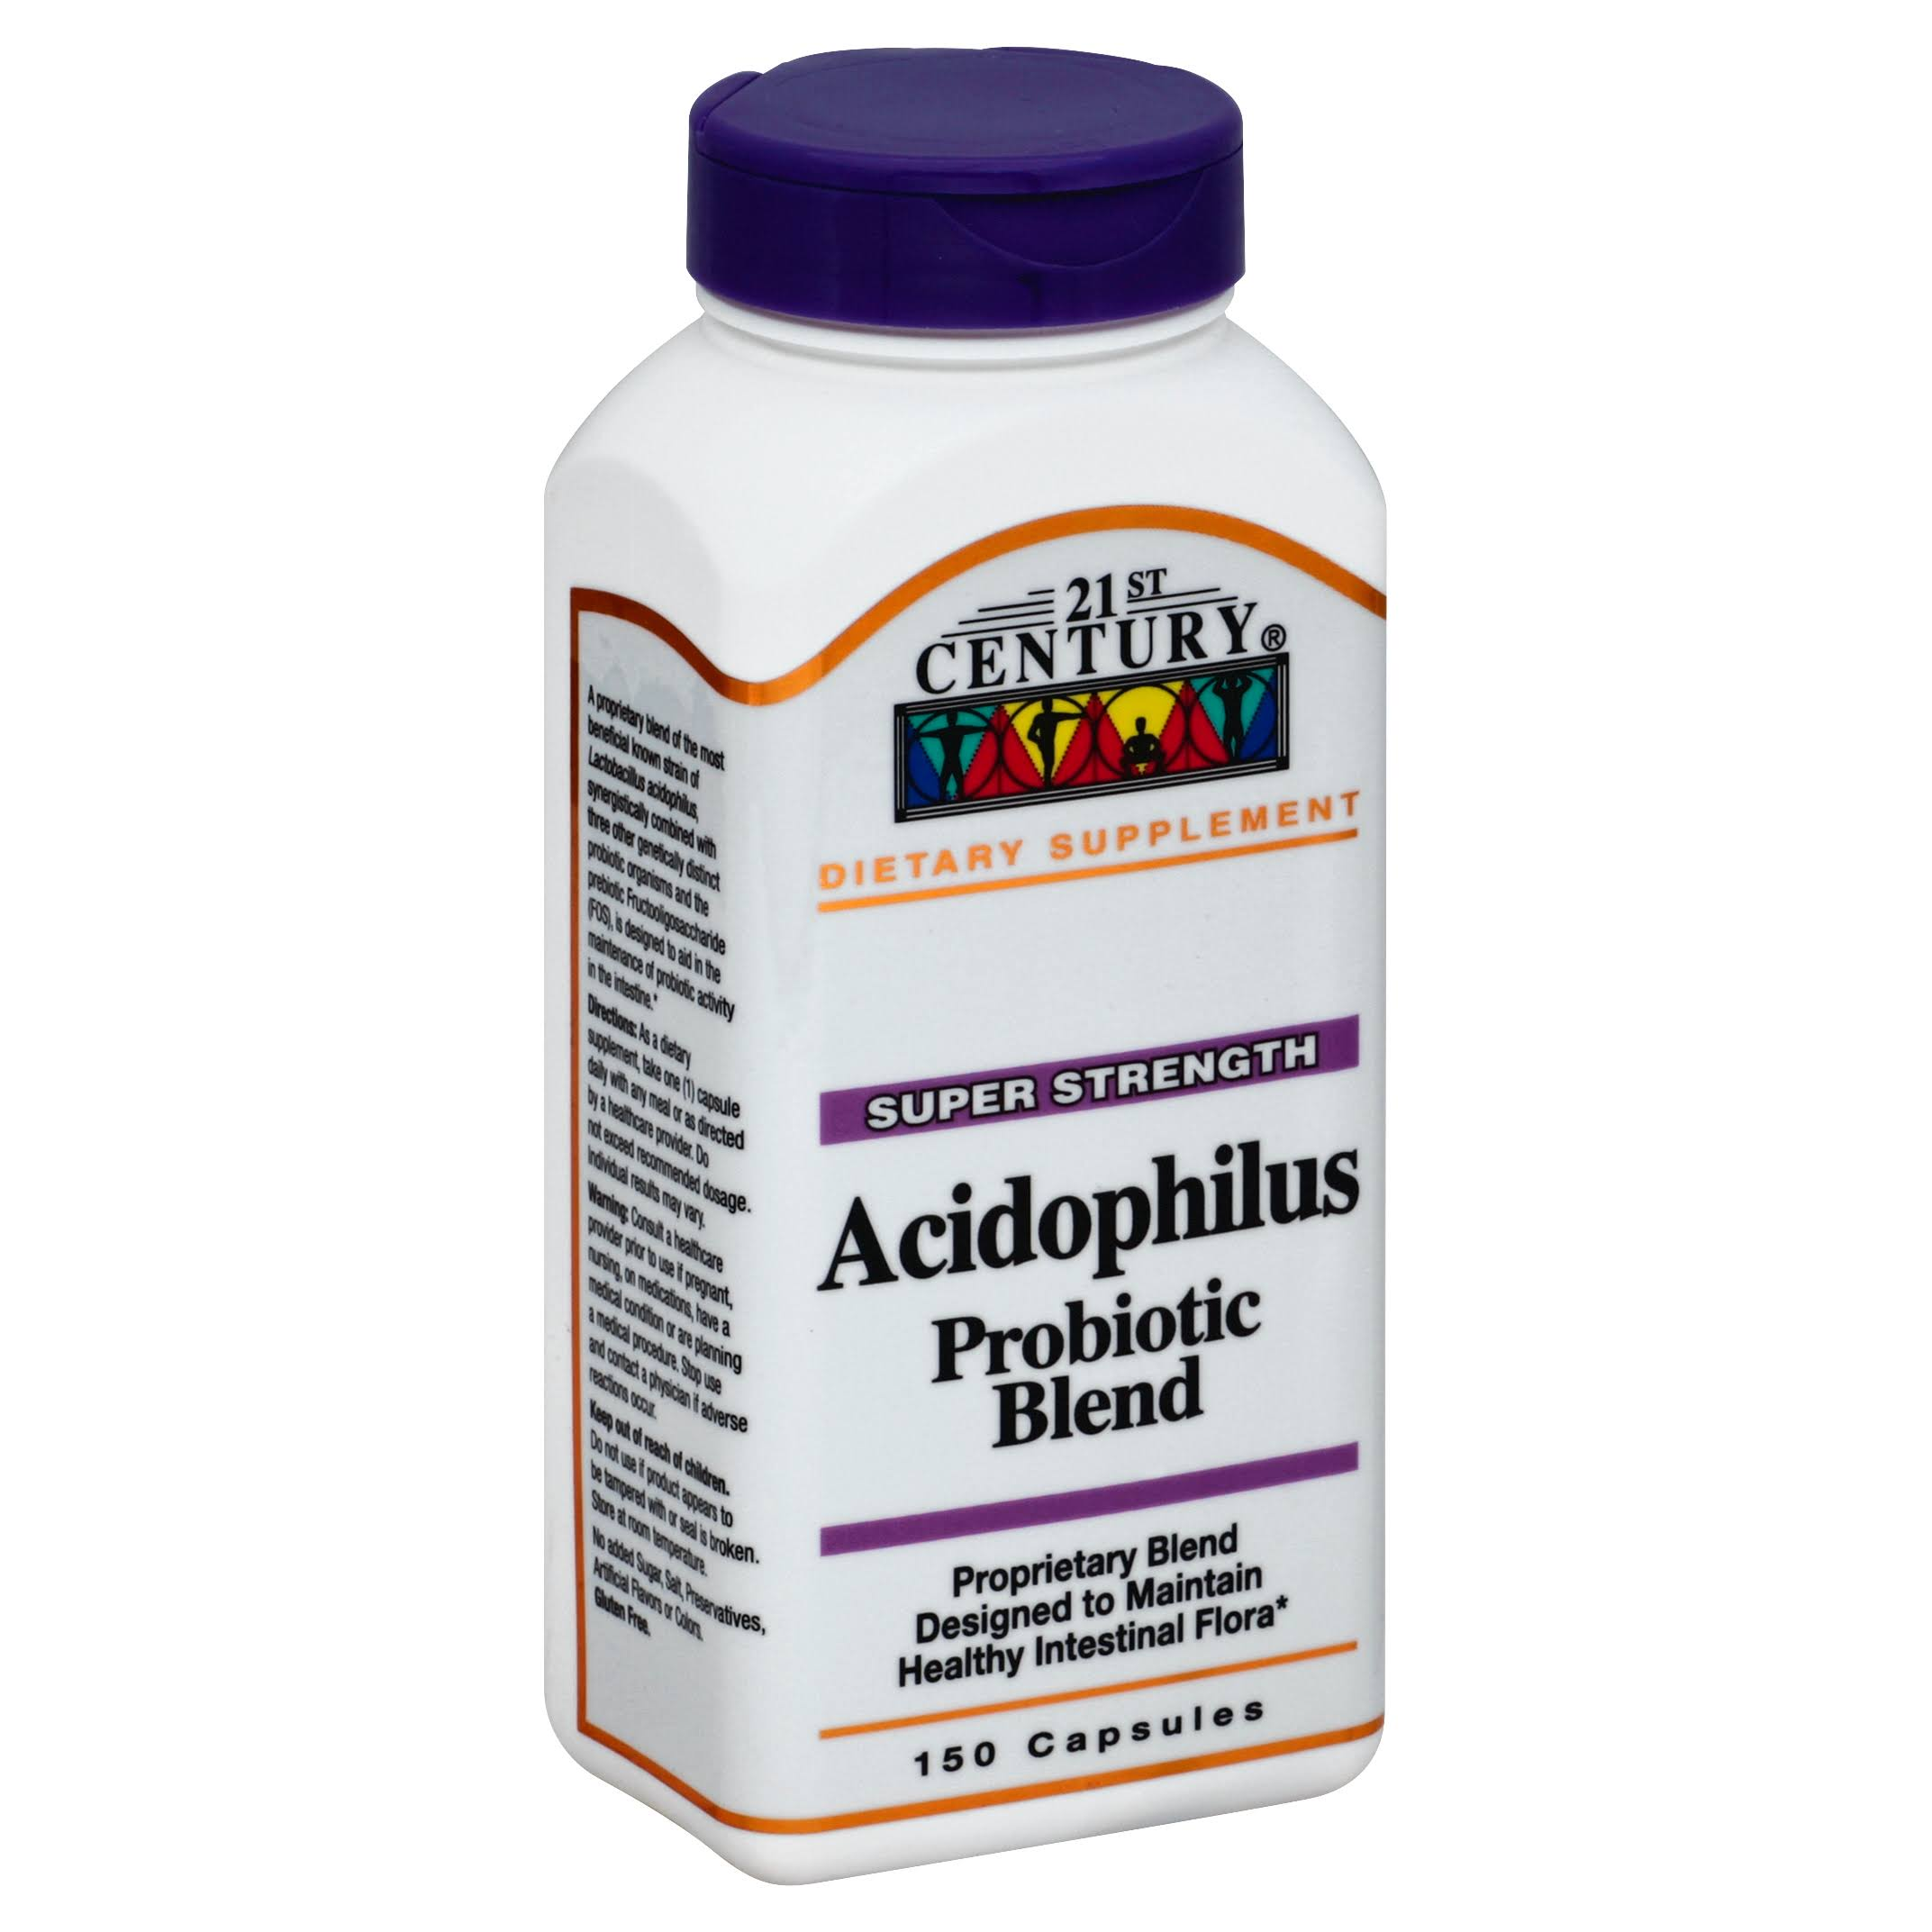 21st Century Acidophilus Probiotic Blend Supplement - 150ct